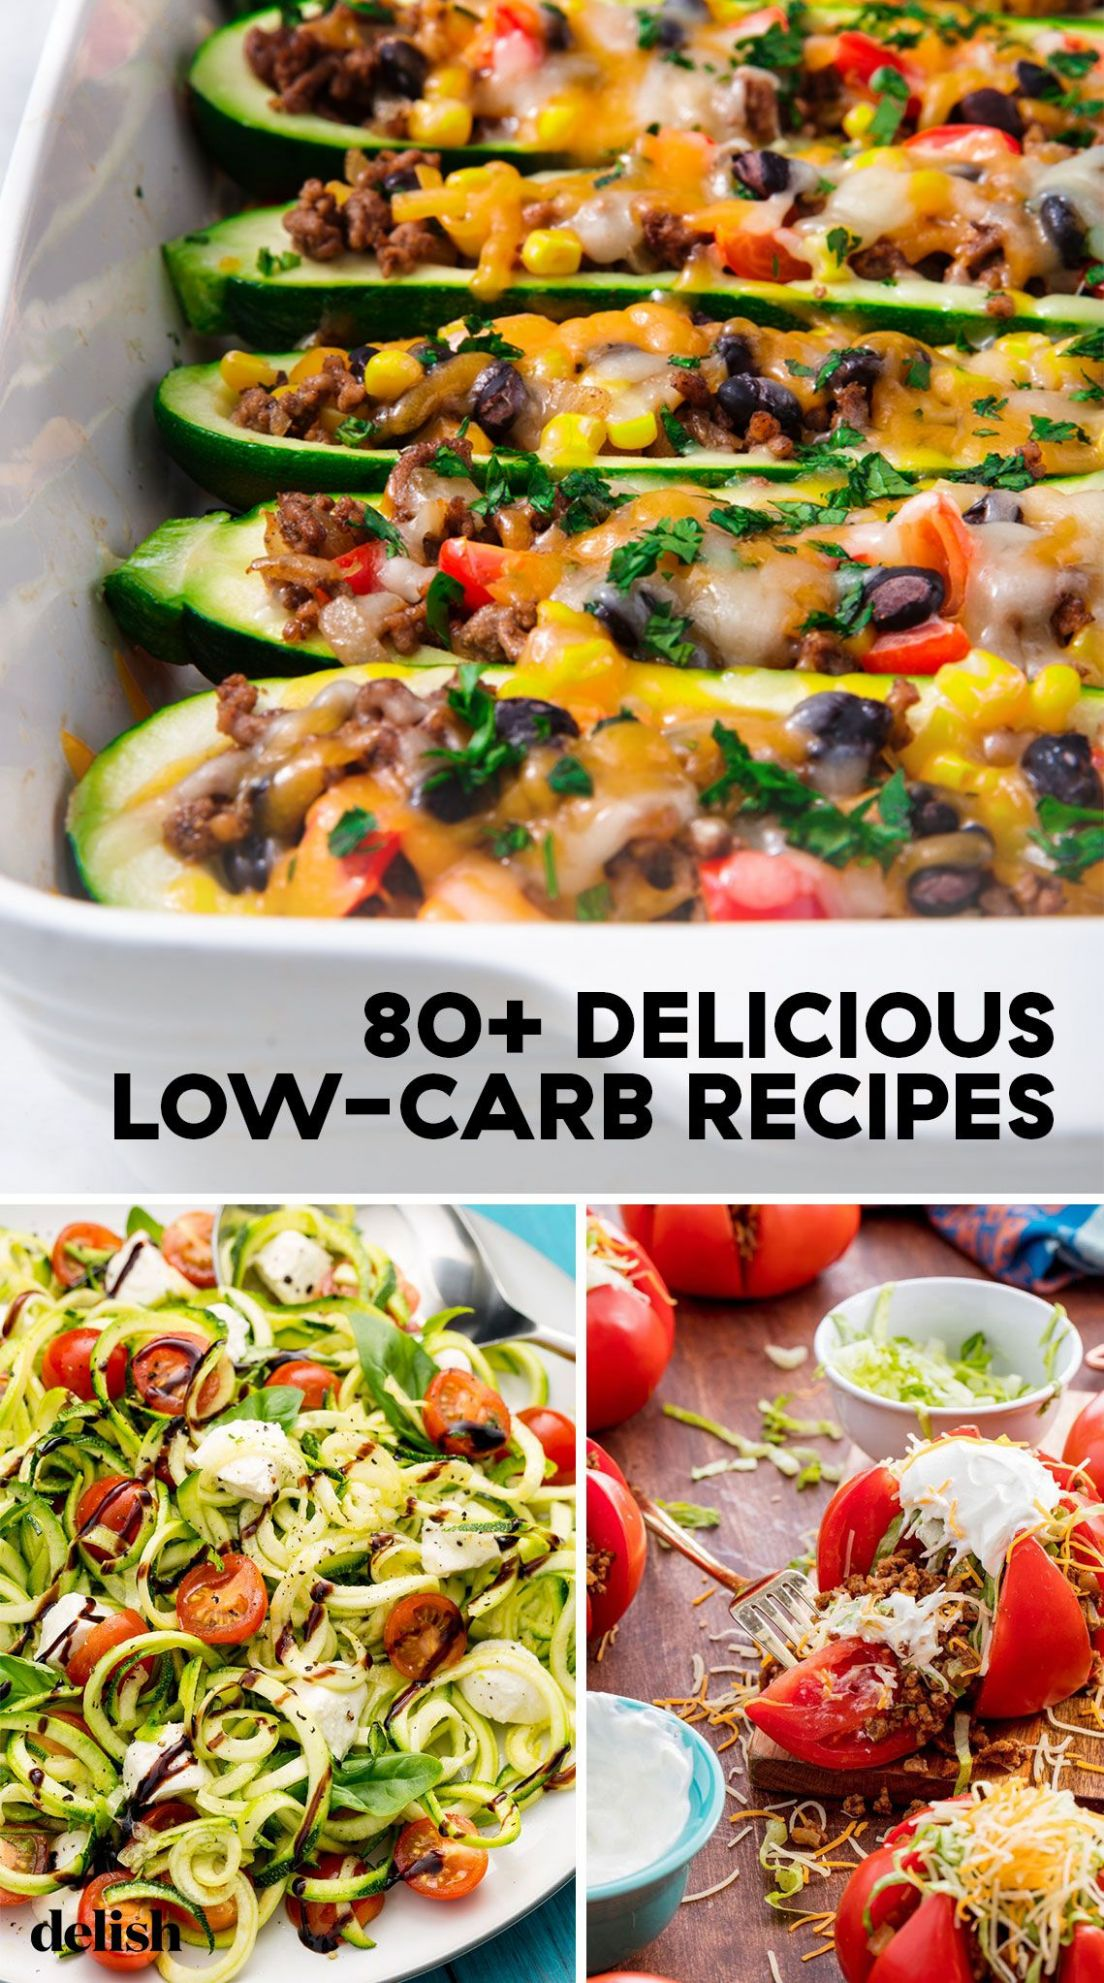 10+ Easy Low Carb Recipes - Best Low Carb Meal Ideas - Food Recipes Low Carb